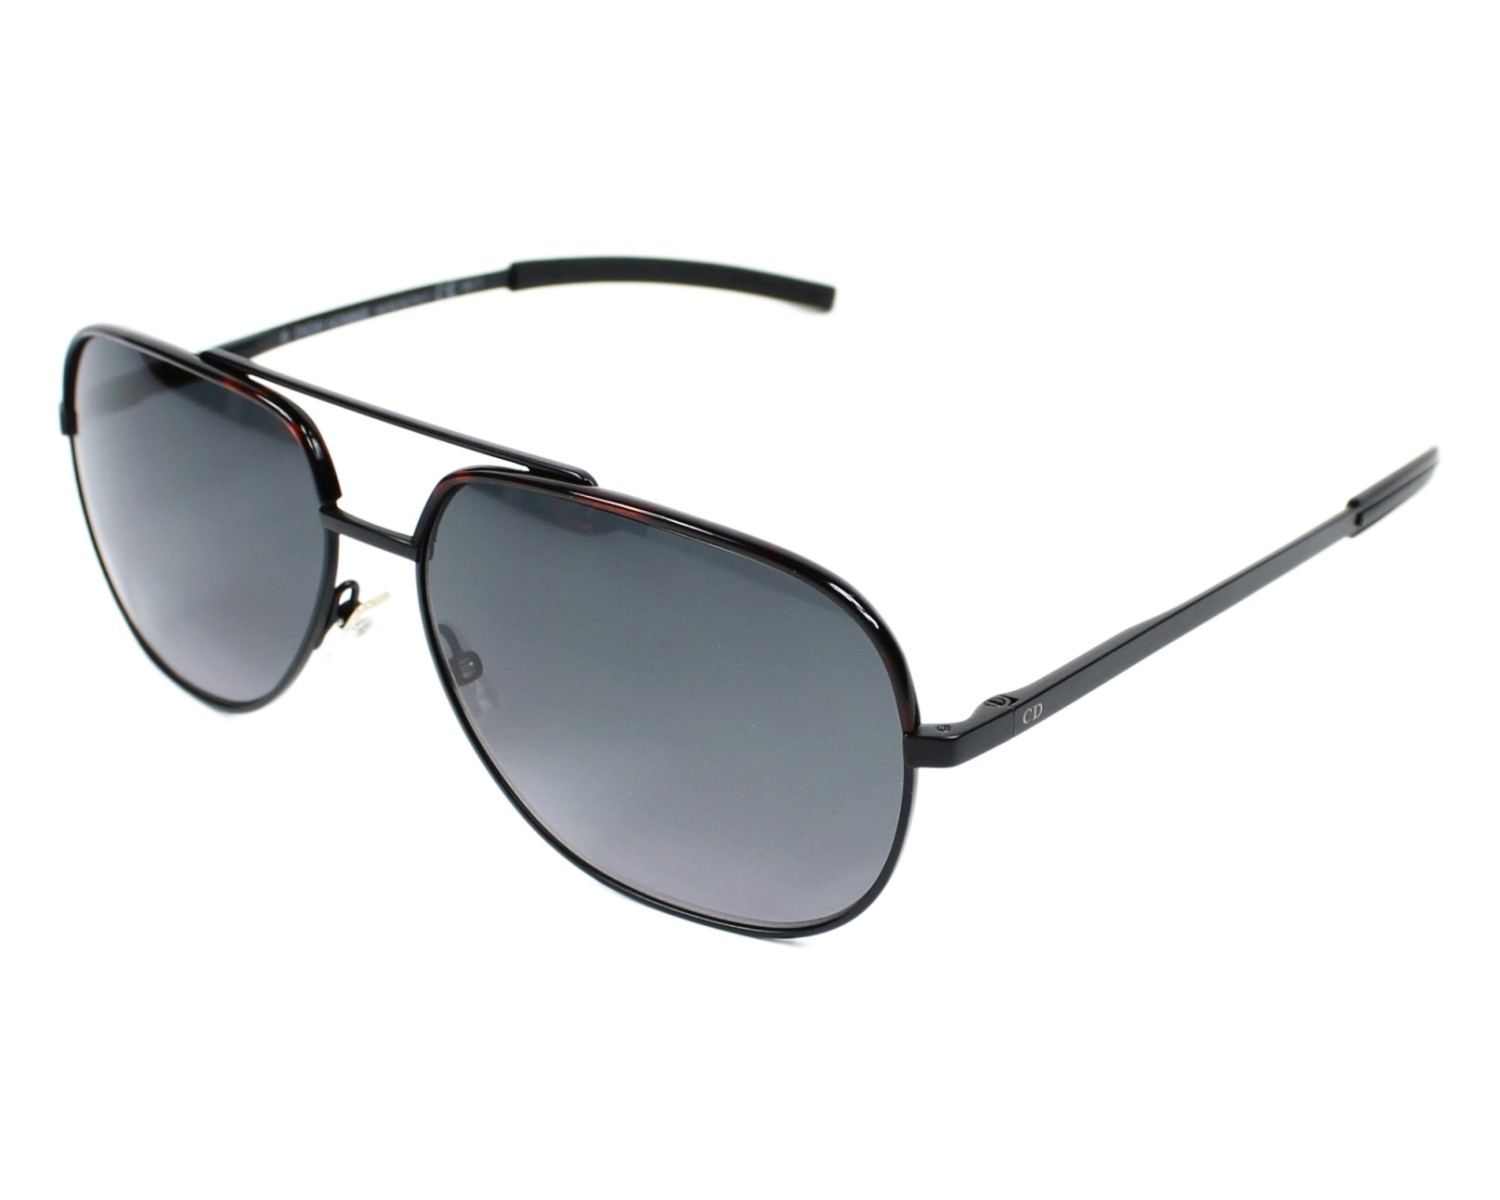 ea34fe371cb9 Christian Dior - Buy Christian Dior sunglasses online at low prices